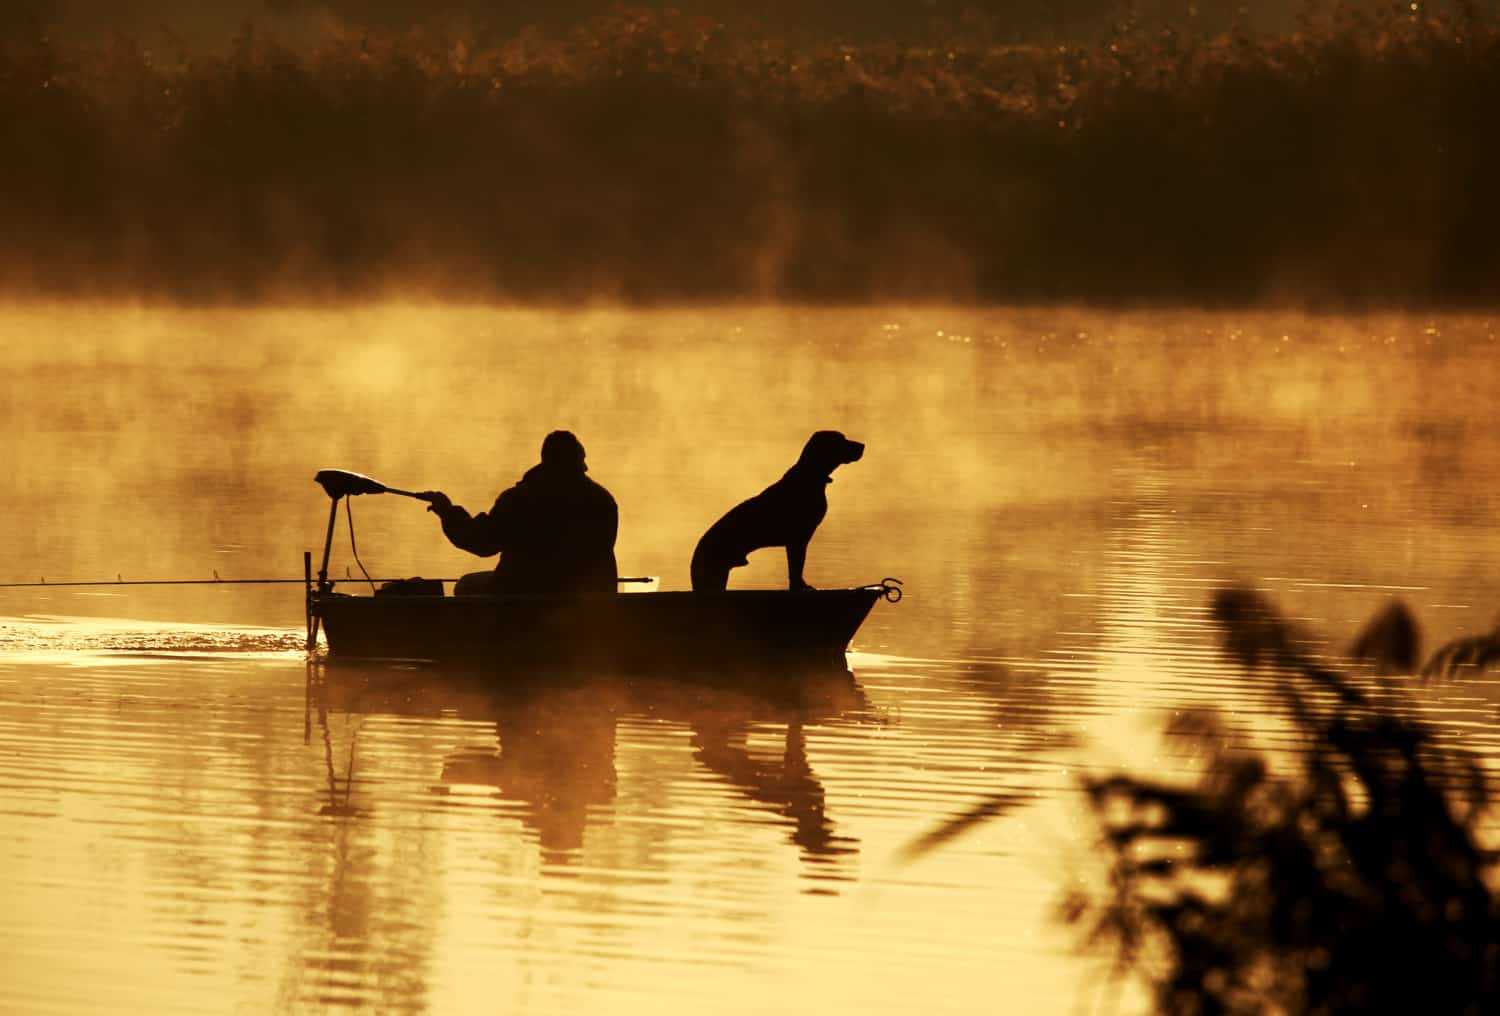 Man and a dog in a fishing boat at sunrise with fog rising off the water